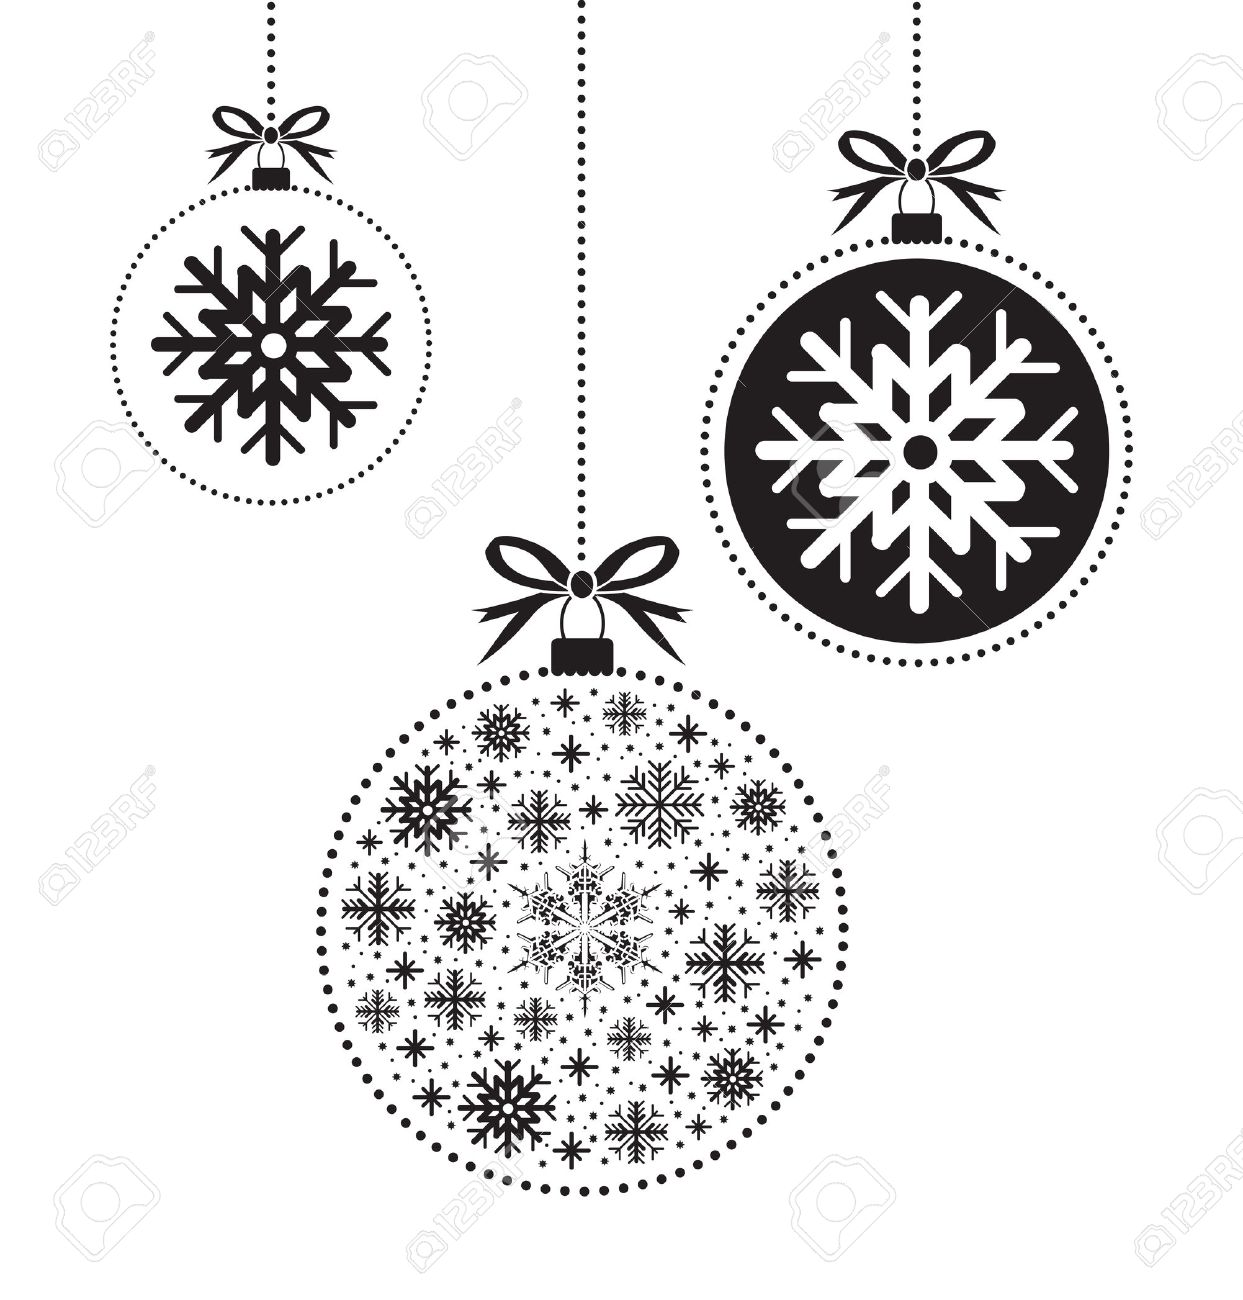 Christmas ornament black and white - Vector Black And White Christmas Ball Ball